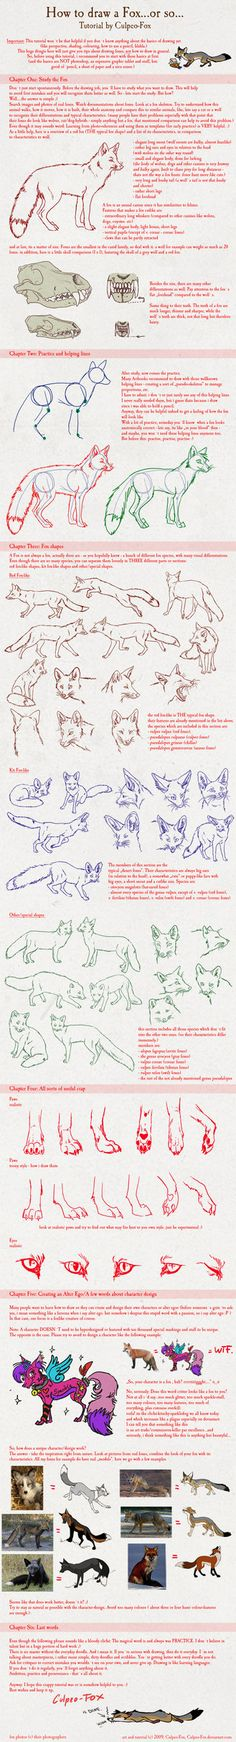 Fox drawing tutorial by Culpeo-Fox via deviantart